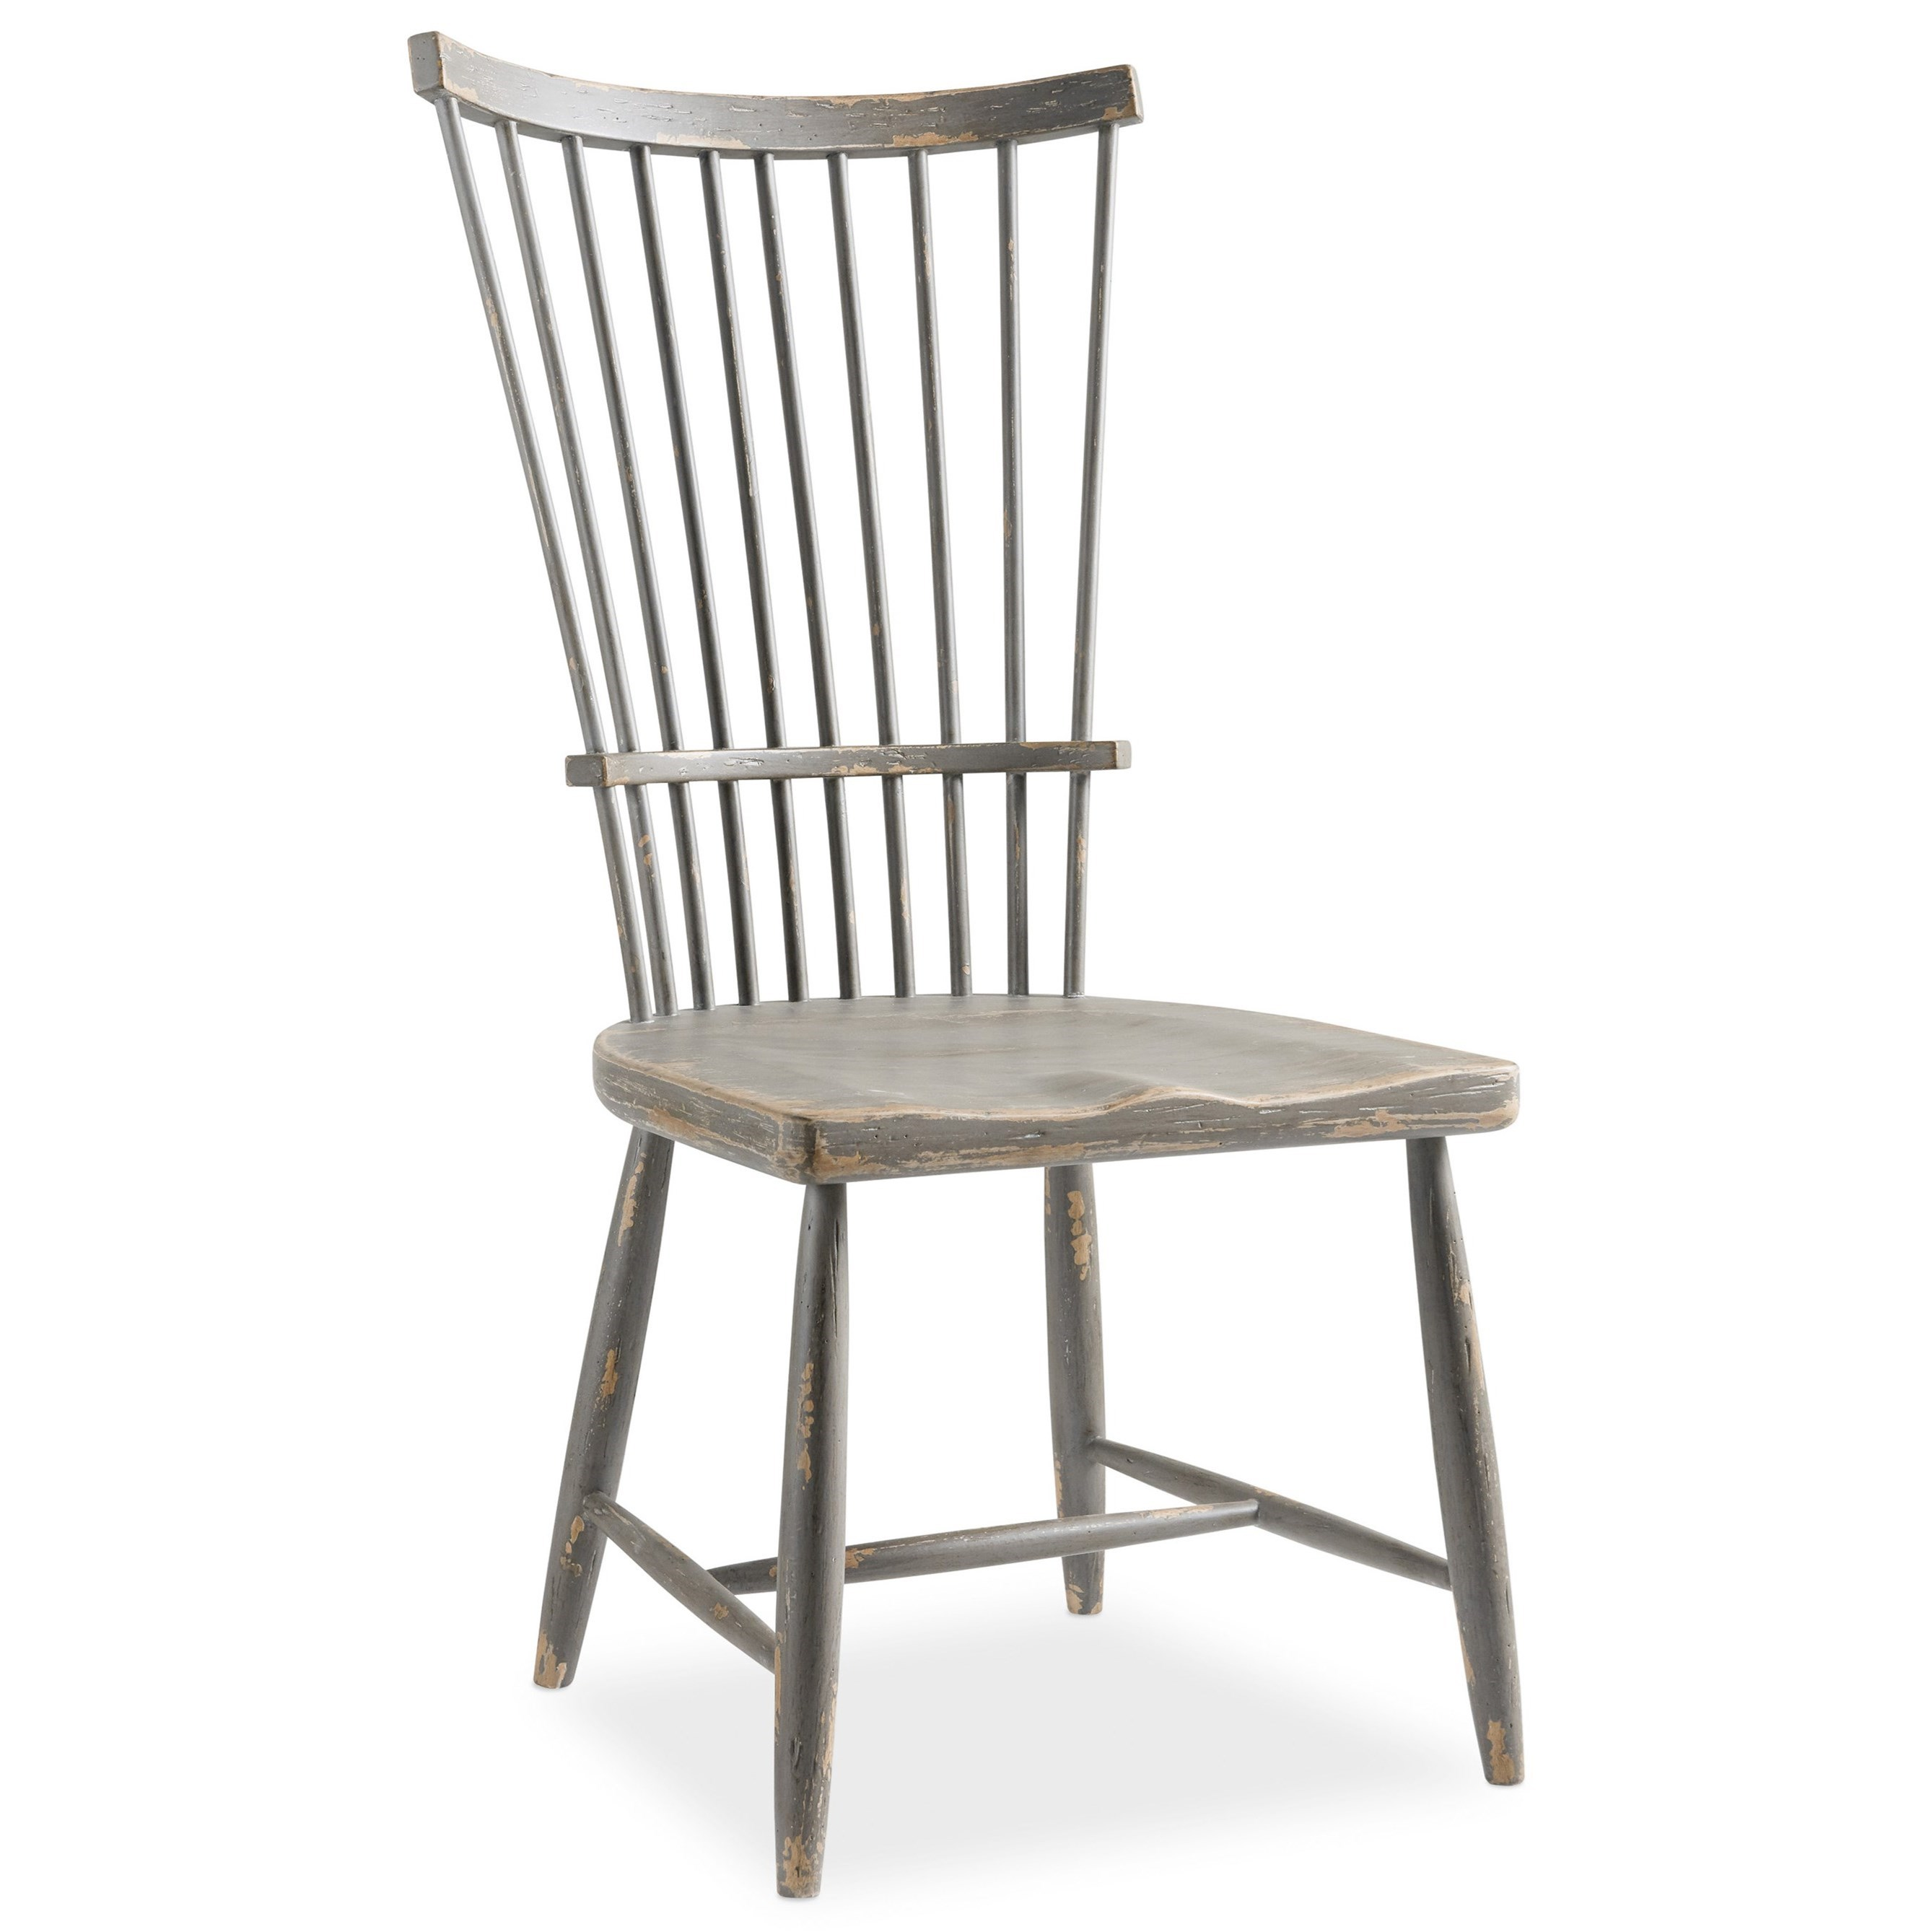 Alfresco Marzano Windsor Side Chair by Hooker Furniture at Suburban Furniture